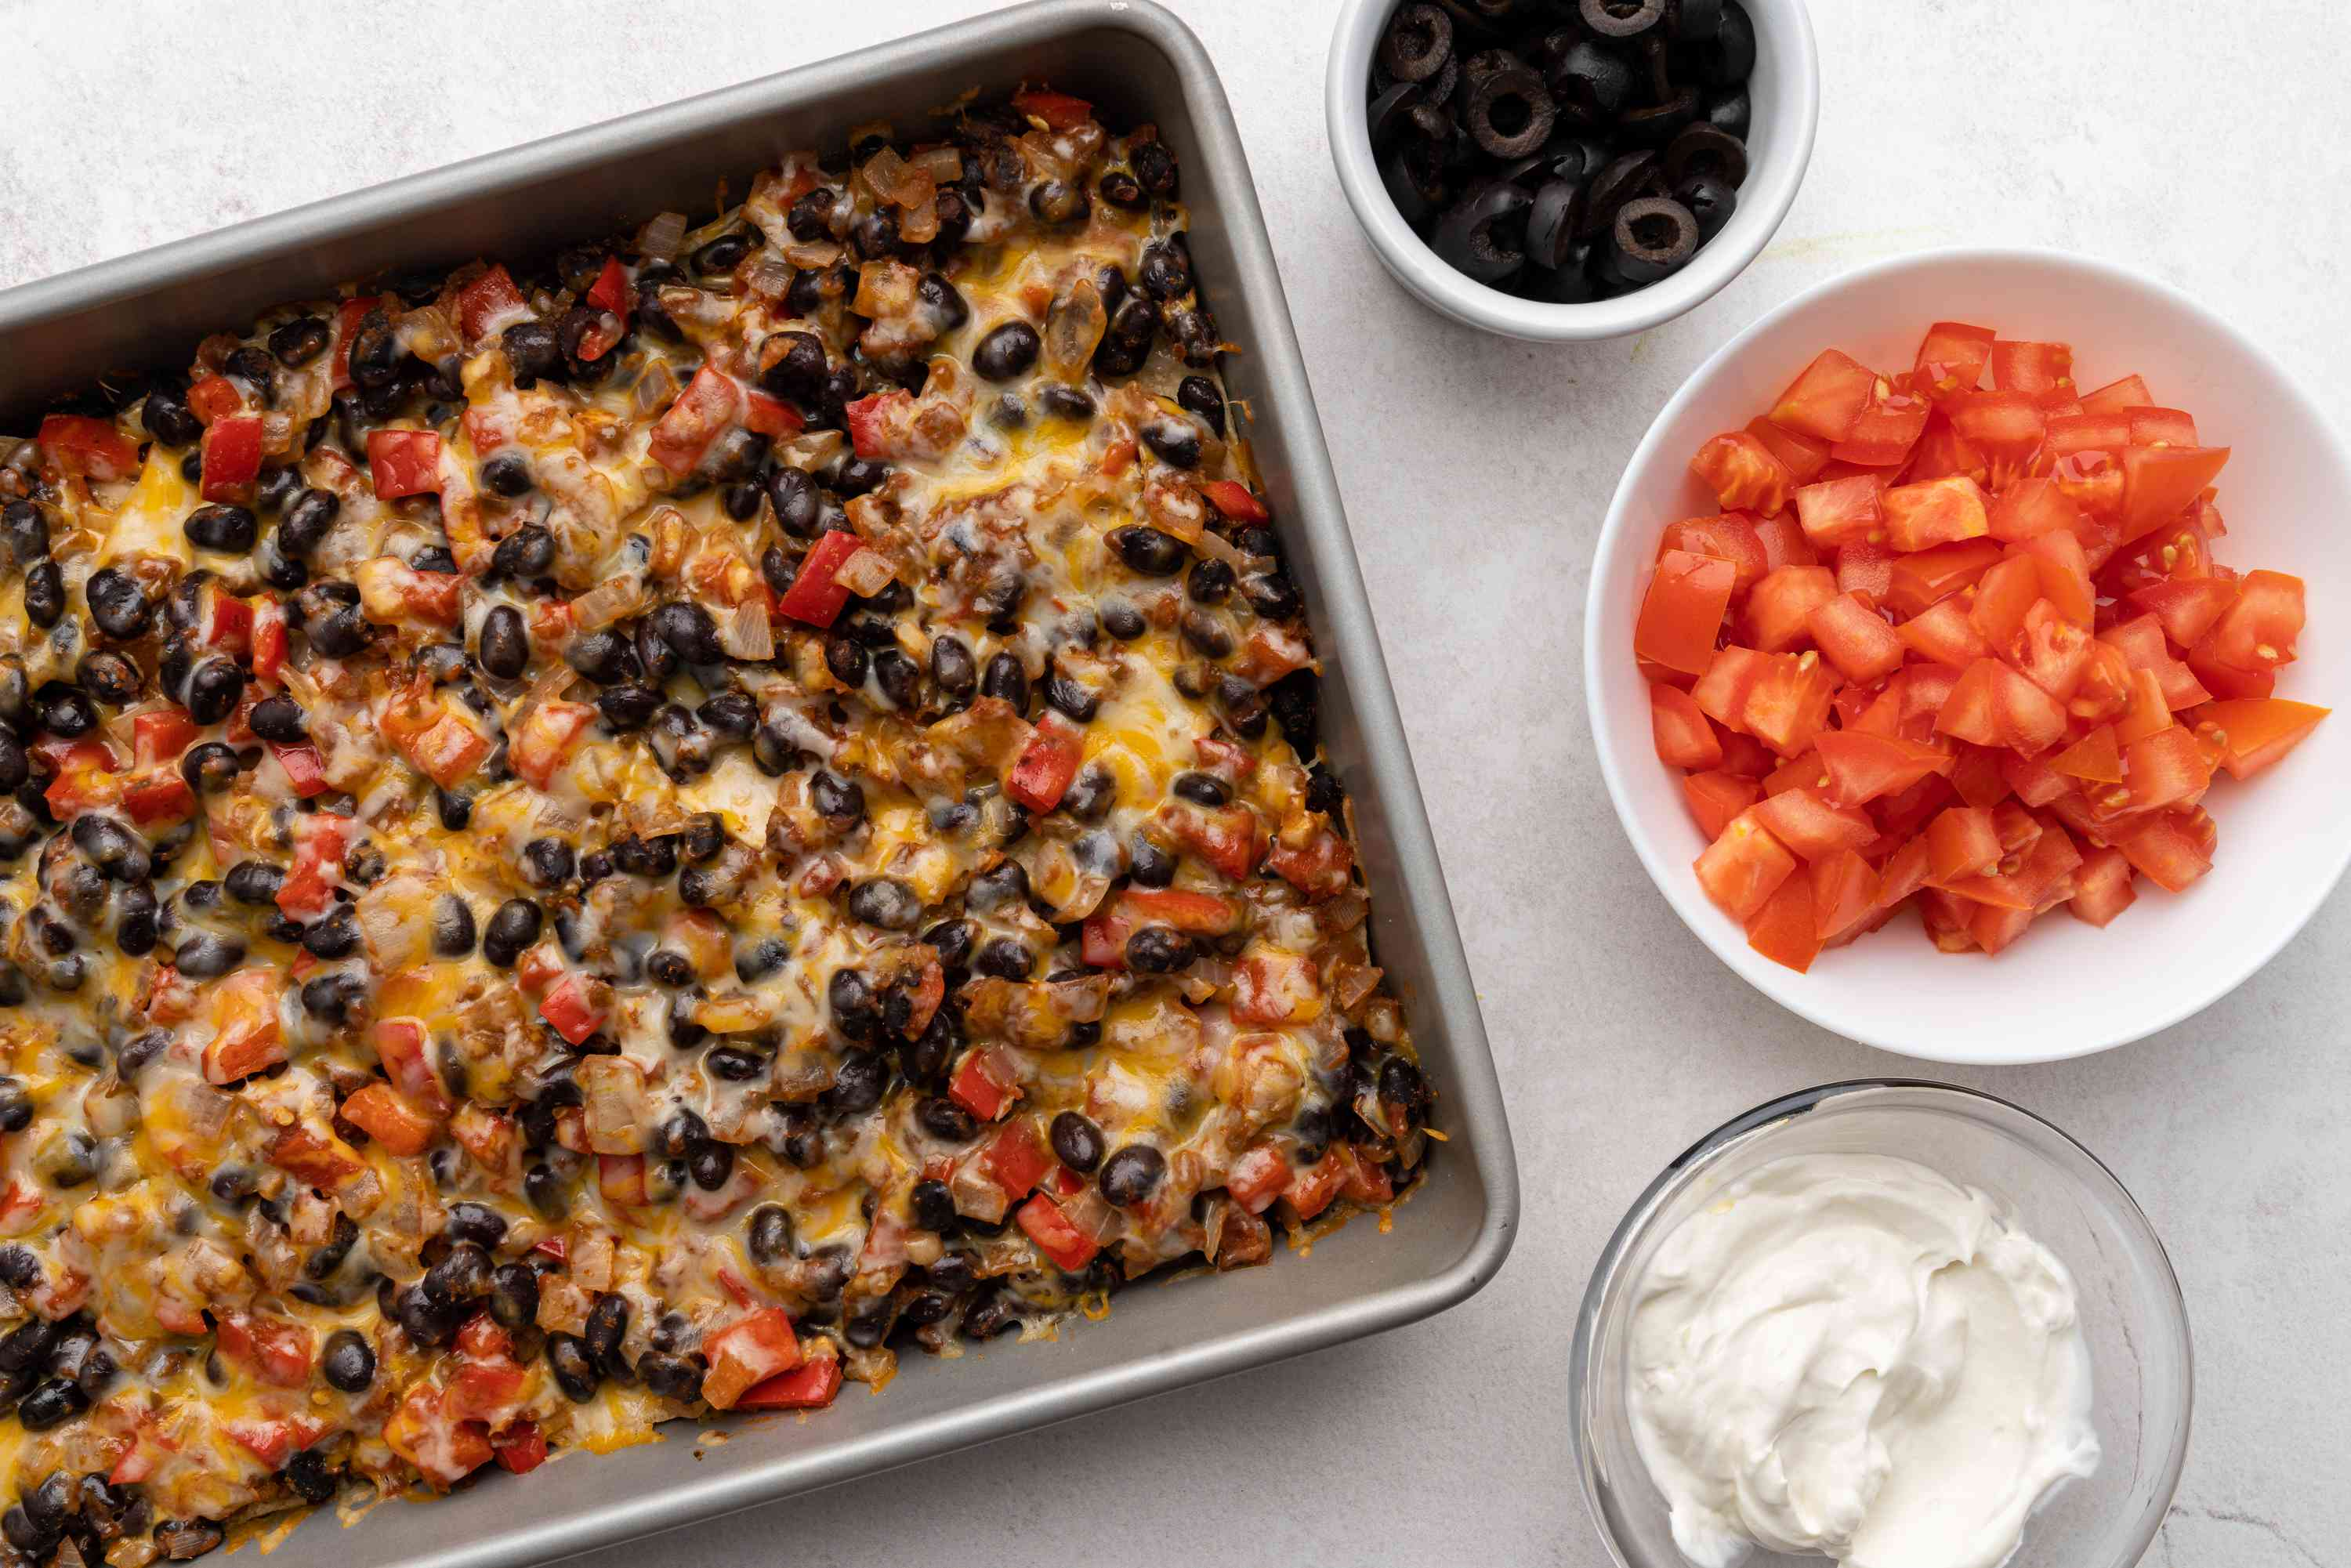 baked Vegetarian Mexican Casserole With Black Beans served with tomatoes, olives and sour cream